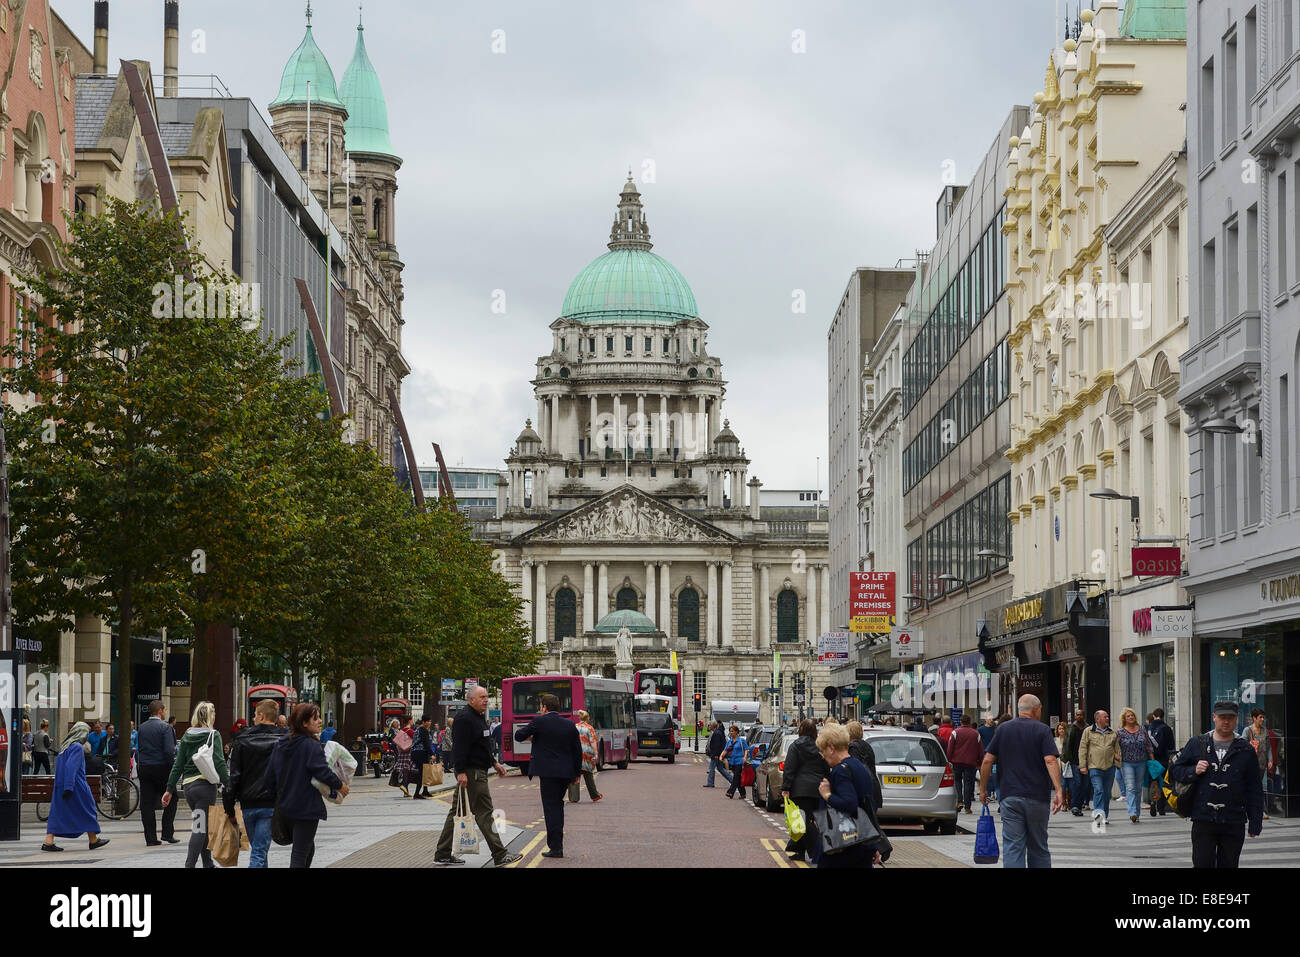 A main shopping street looking towards City Hall in Belfast city centre - Stock Image